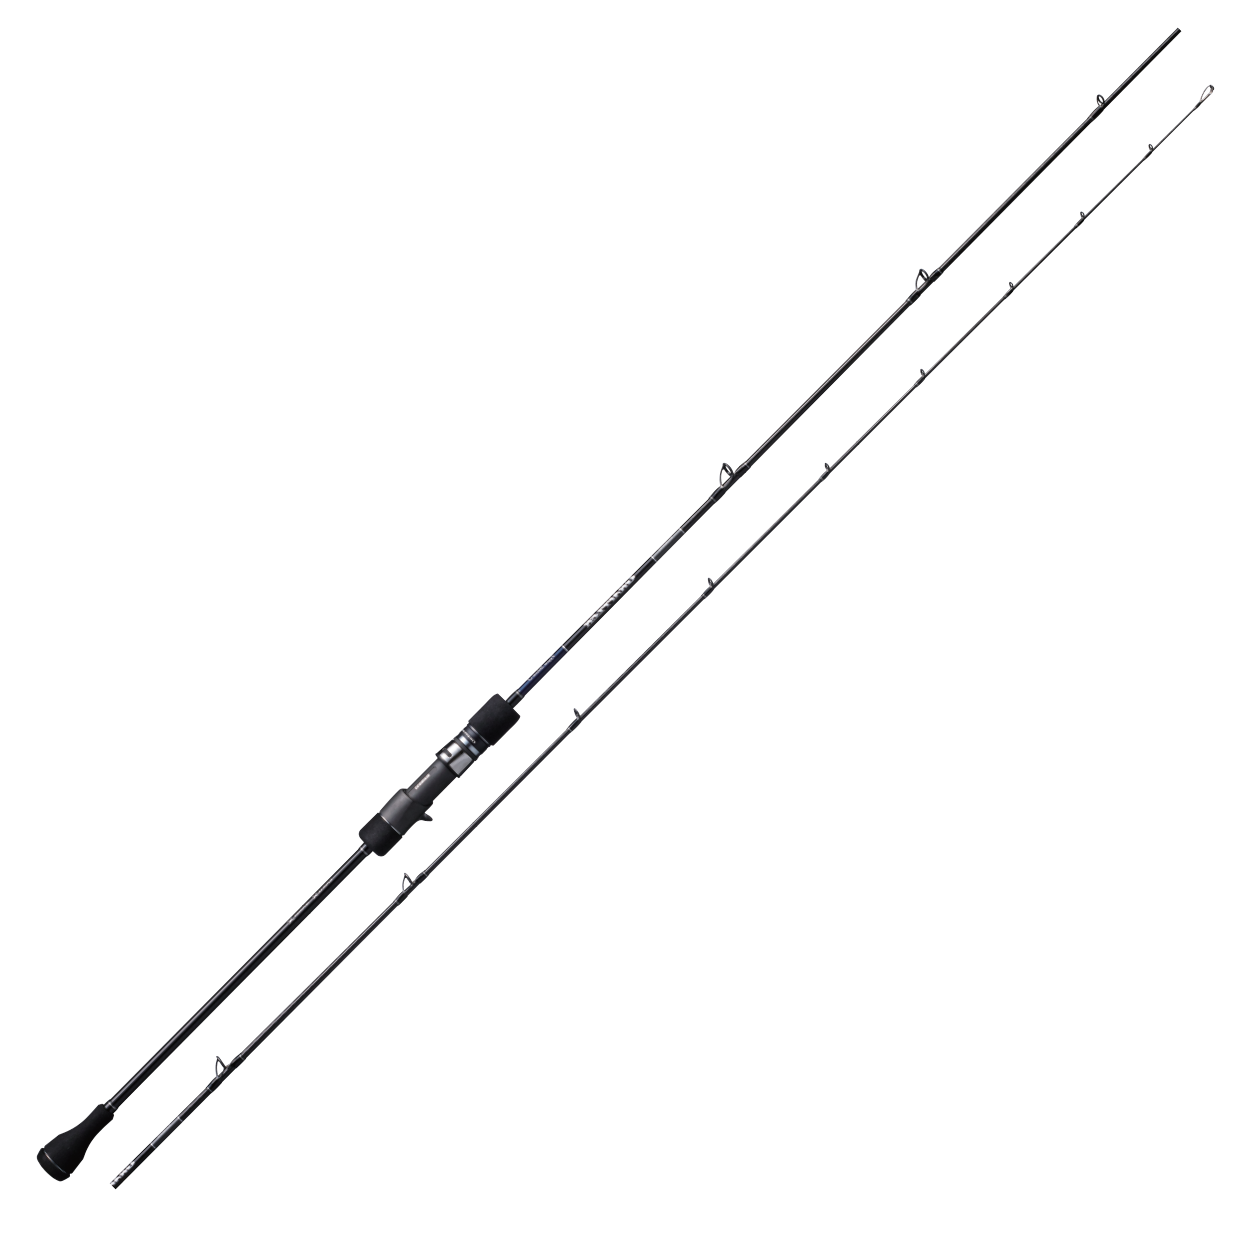 CANNA GRAPPLER TYPE SLOW JIGGING B683 SHIMANO 2,03mt GR 260 PER rossoANTE